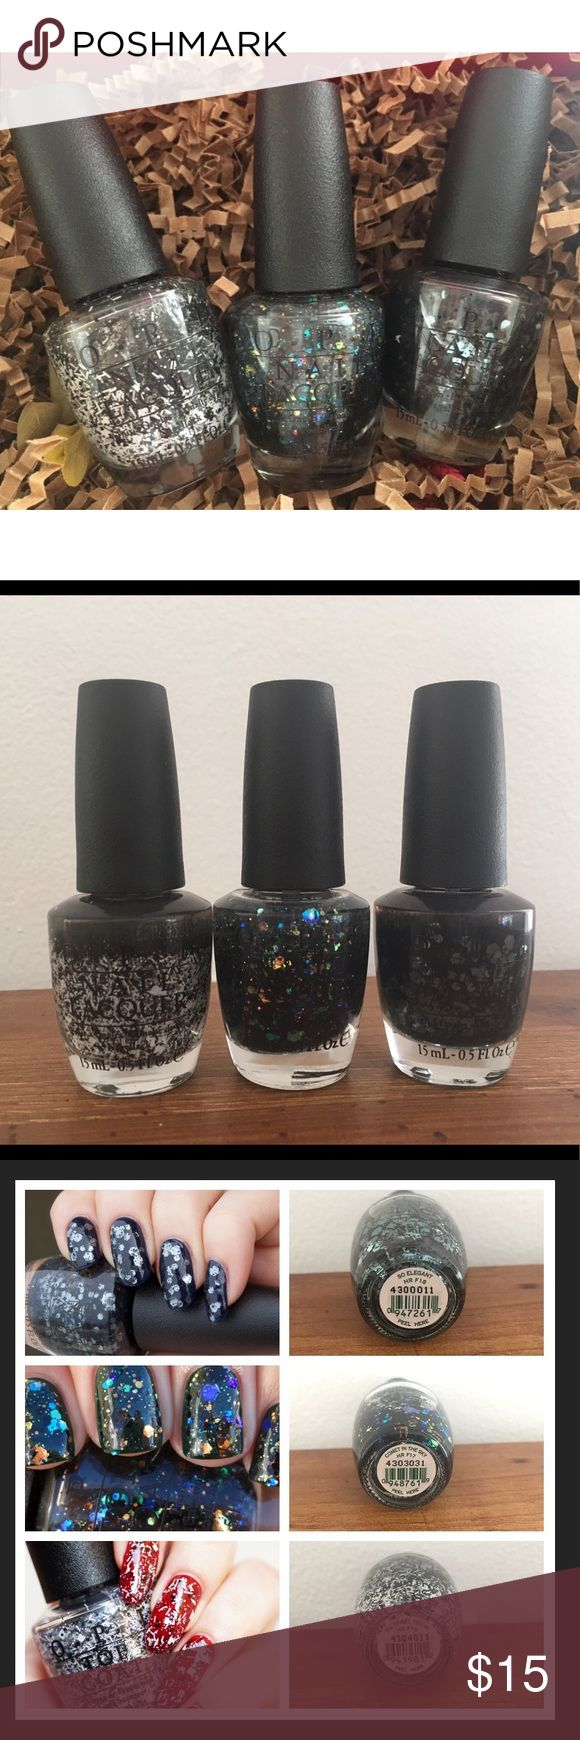 ⚡️Sale⚡️OPI 3 Nail Polish Brand New 💎 ⚡️Sale⚡️OPI 3 Nail Polish Brand New 💎 Top coats designs 😍 so elegant, comet in the sky, & ill tinsel you in. OPI Other